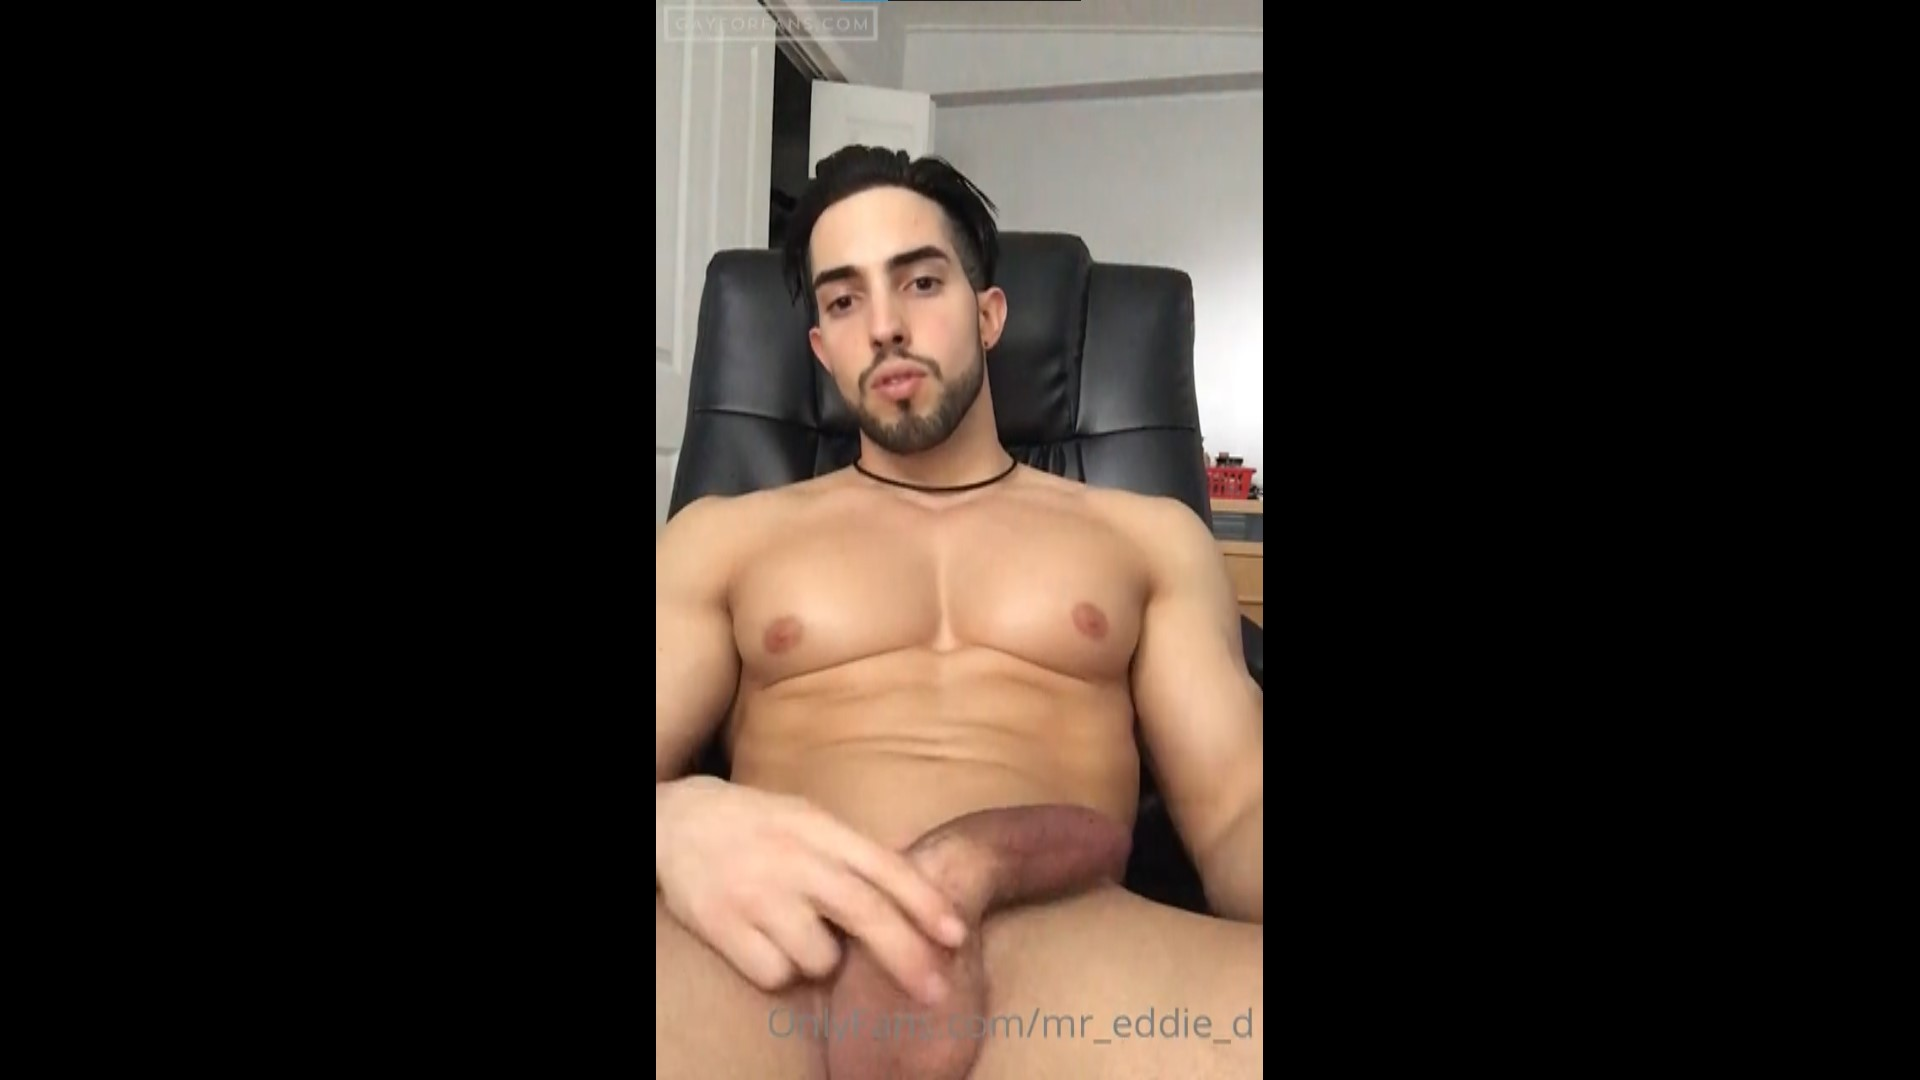 jerking off and shooting big load - Mr_eddie_d